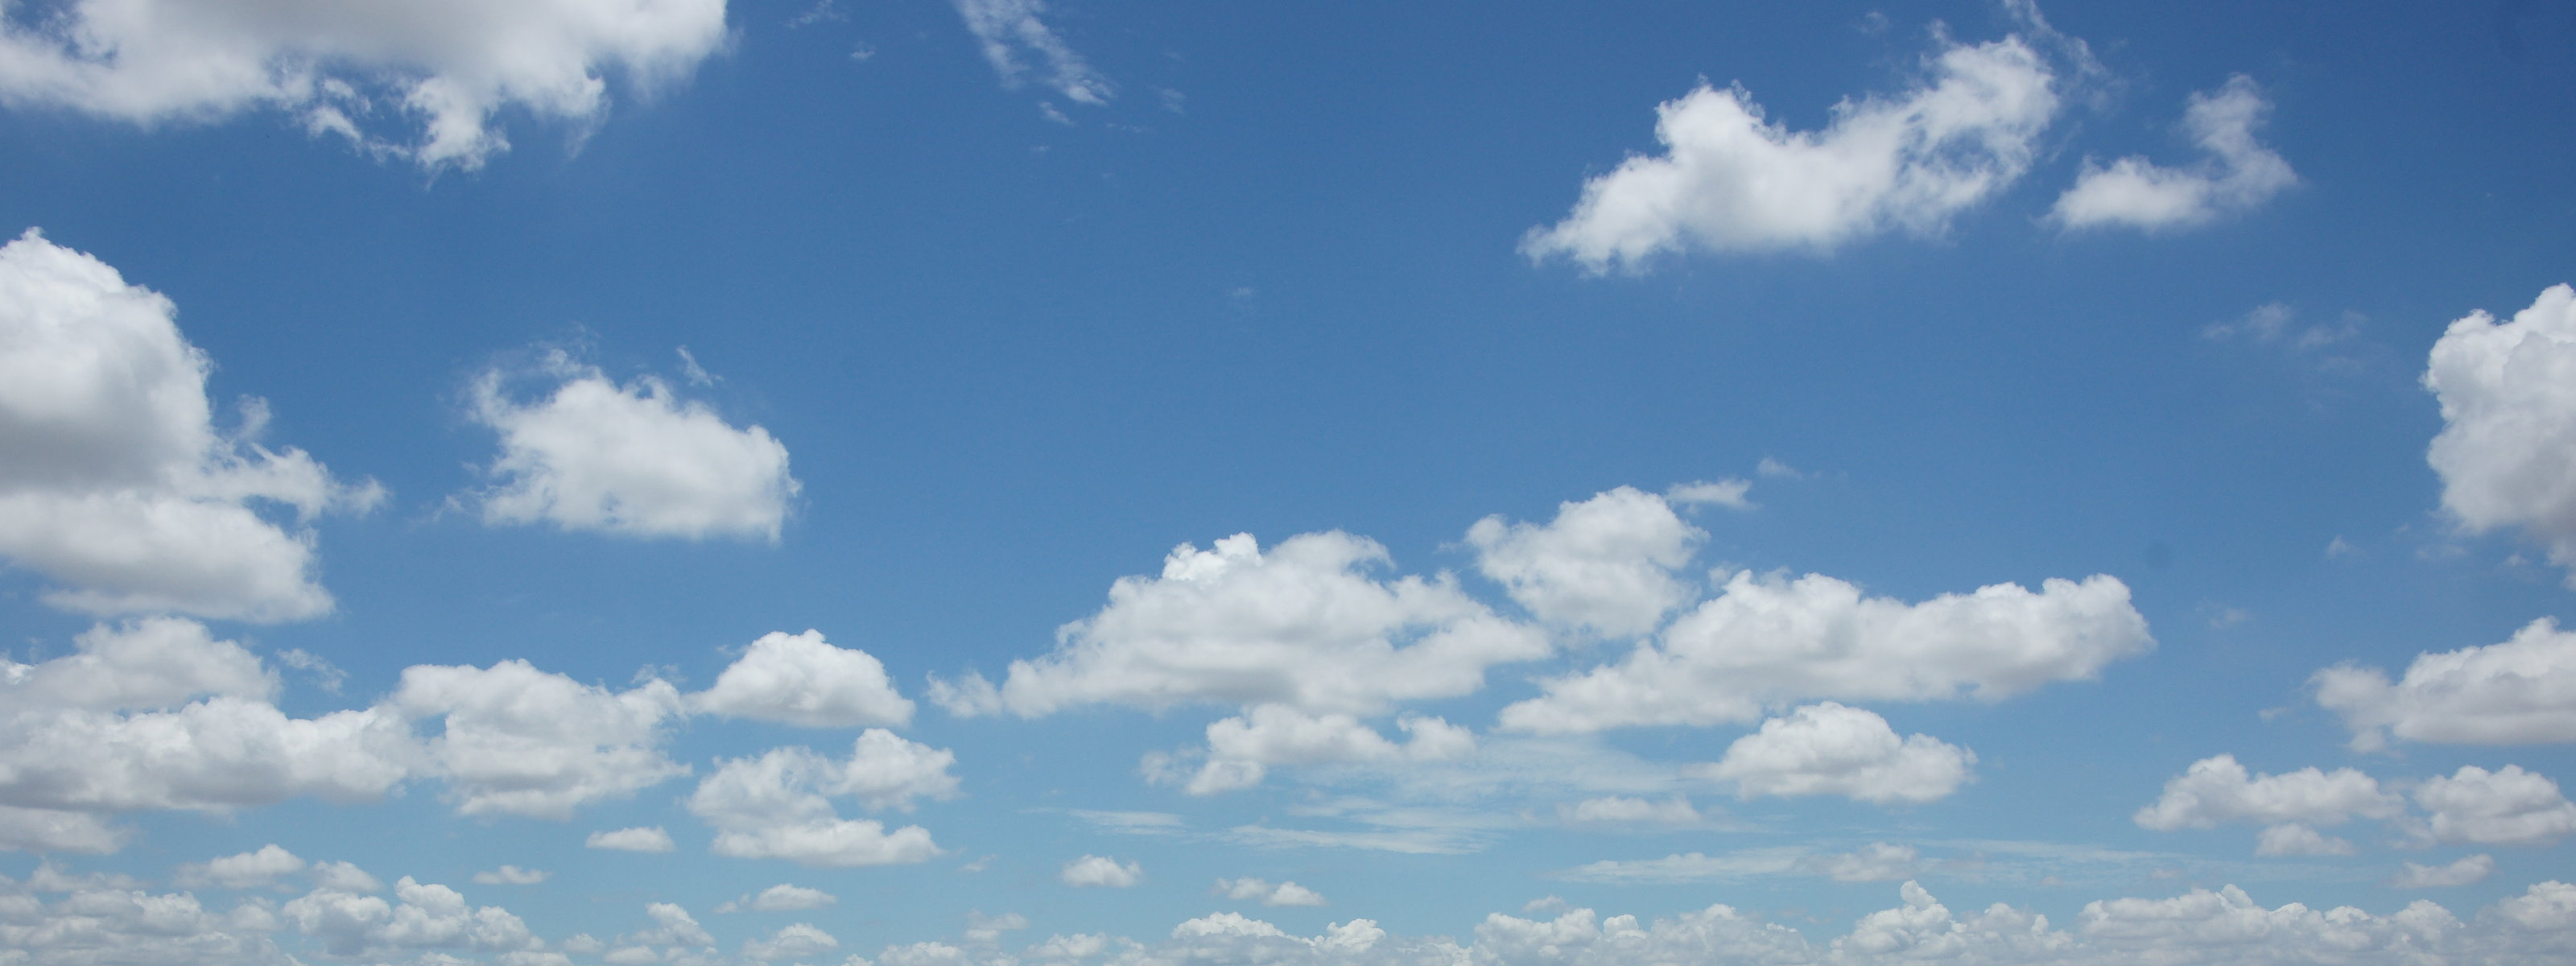 blue sky white clouds cambodia dual monitor background 3200x1200